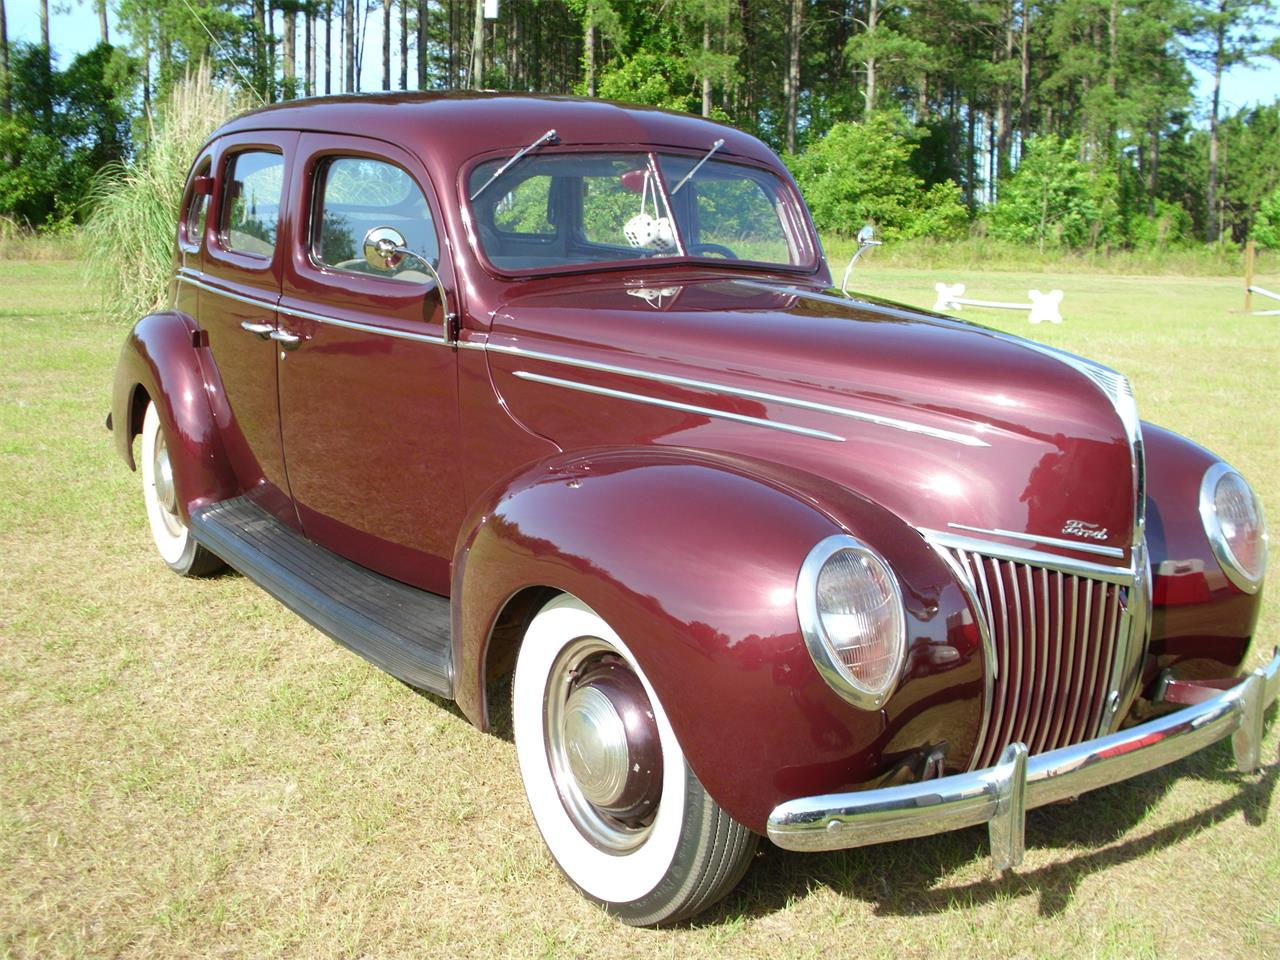 Large Picture of Classic '39 Ford Fordor Deluxe Offered by a Private Seller - ETZZ